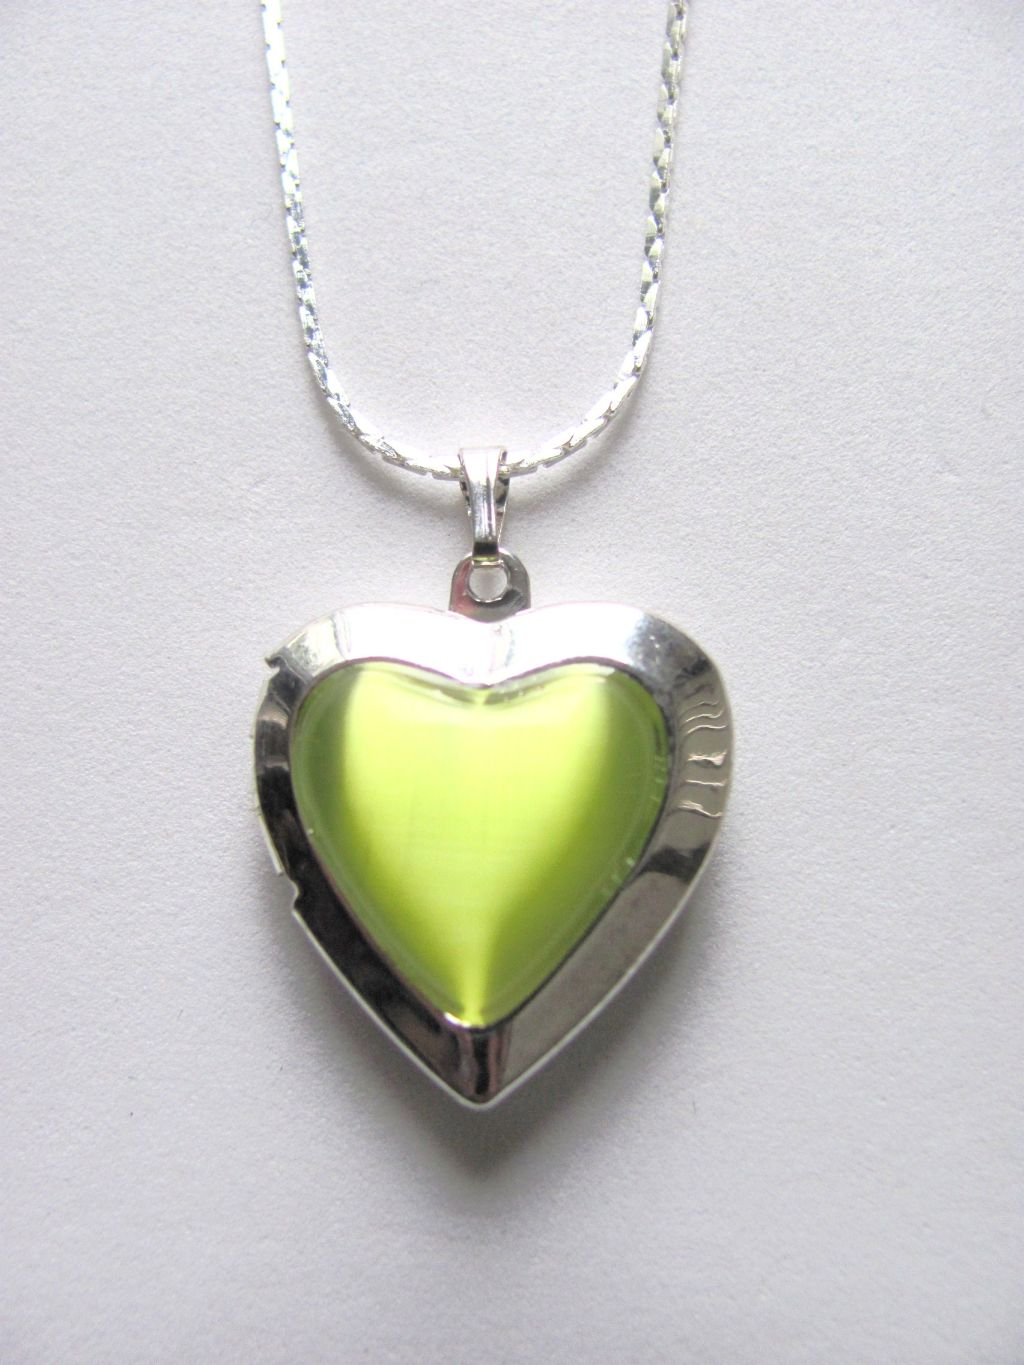 Green Peridot Heart Locket Photo Pendant Necklace, Silver Tone